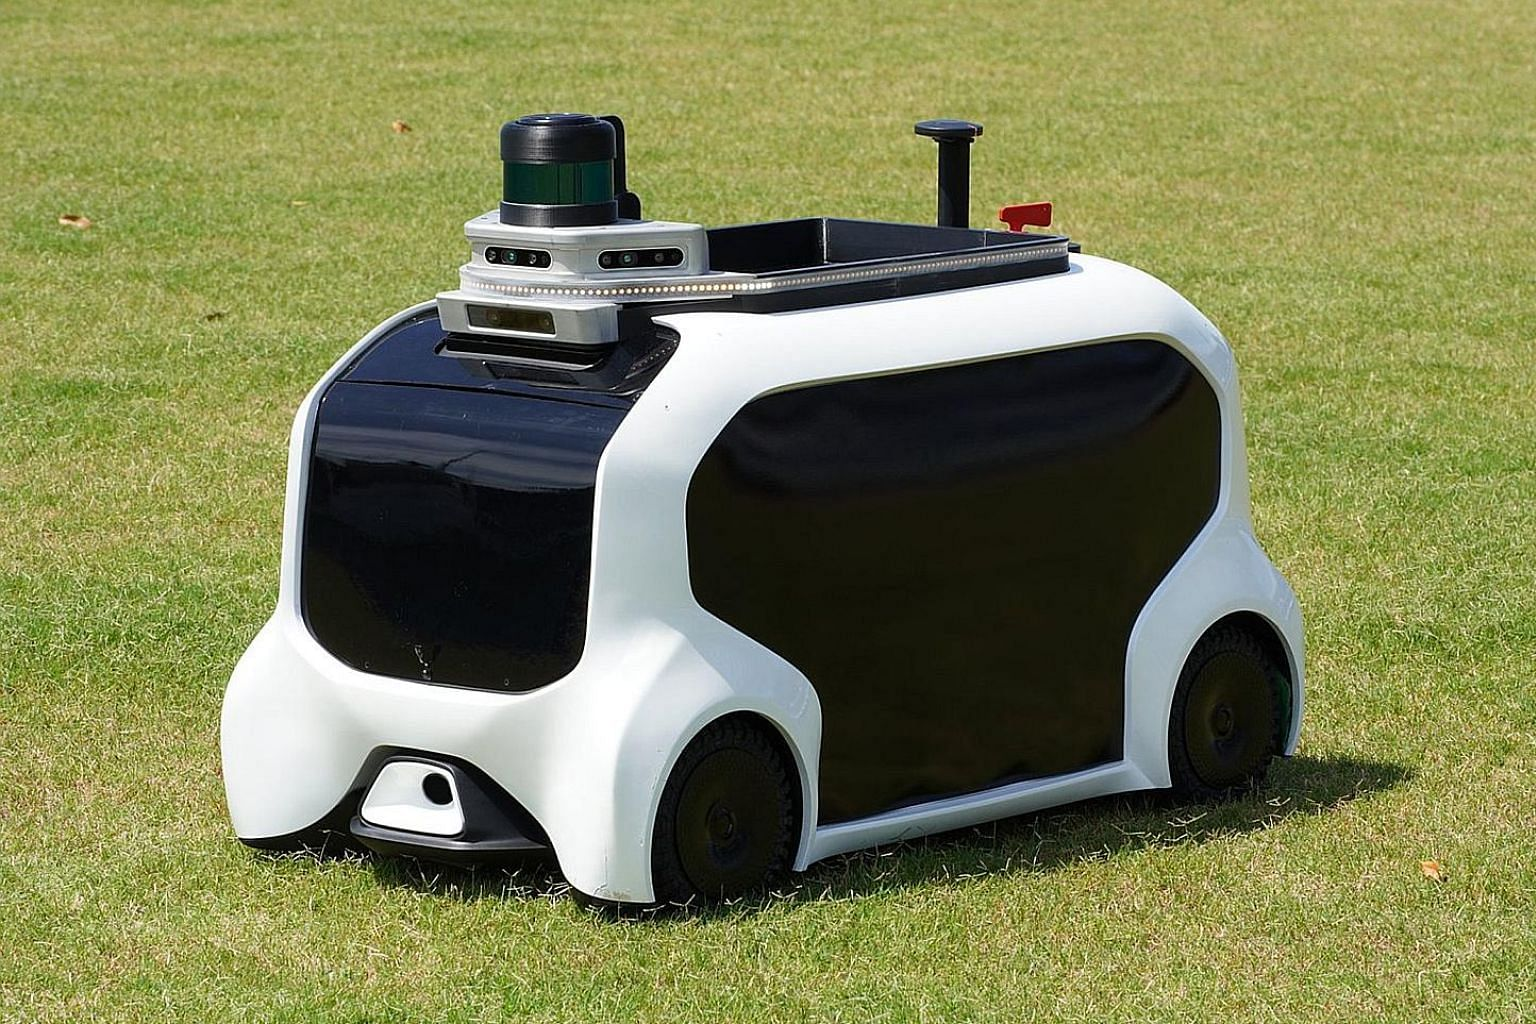 Toyota is deploying hydrogen fuel cell Sora buses (above) and the e-Palettes (right) to shuttle visitors between venues during the Games next year. Toyota will use field support robots to retrieve thrown javelins during the Tokyo Olympics and Paralym